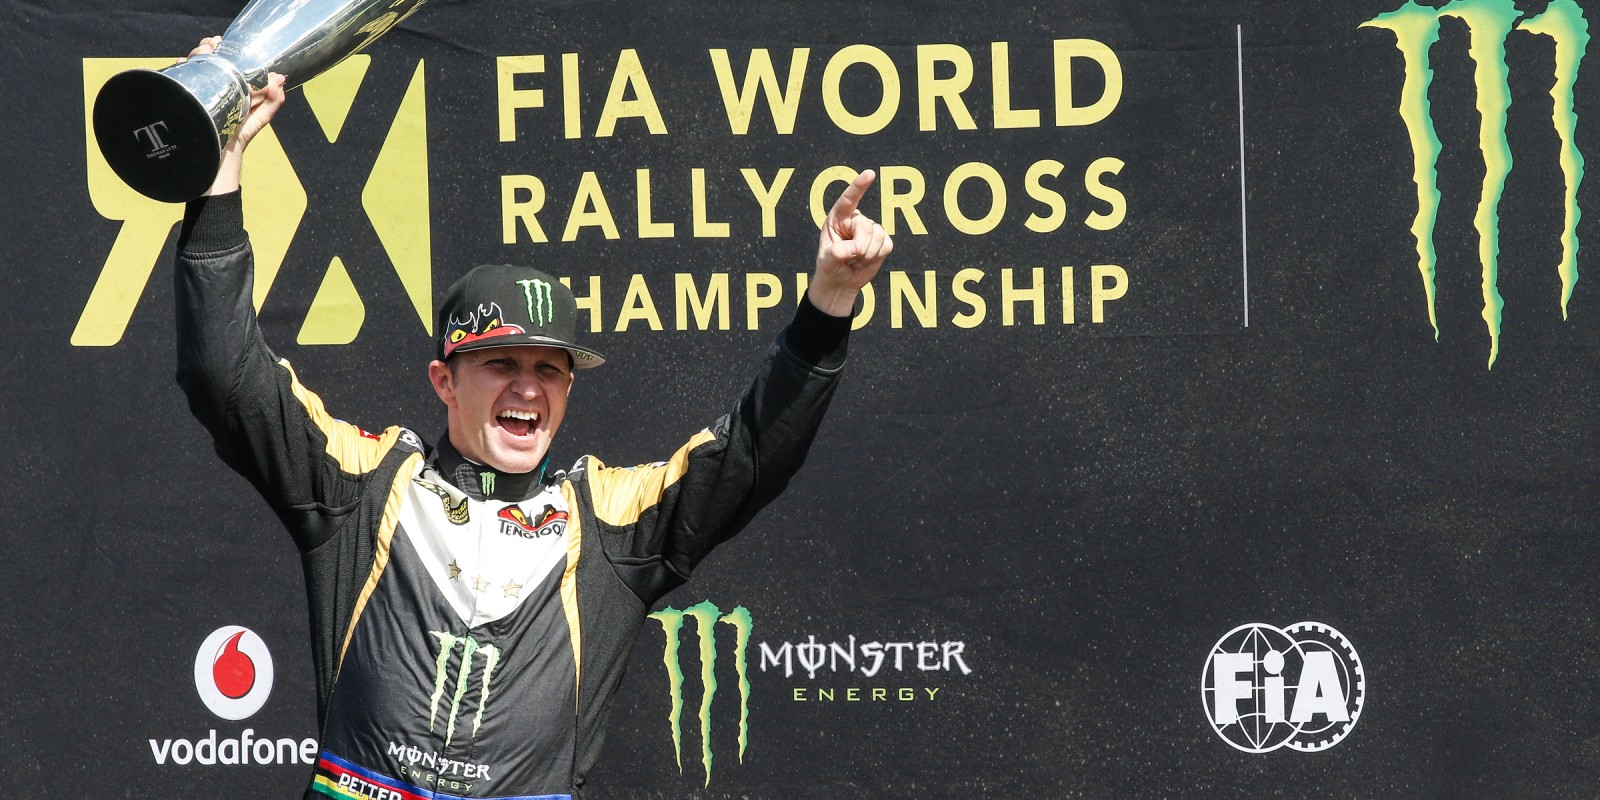 Petter Solberg at the 2015 World Rallycross in Argentina